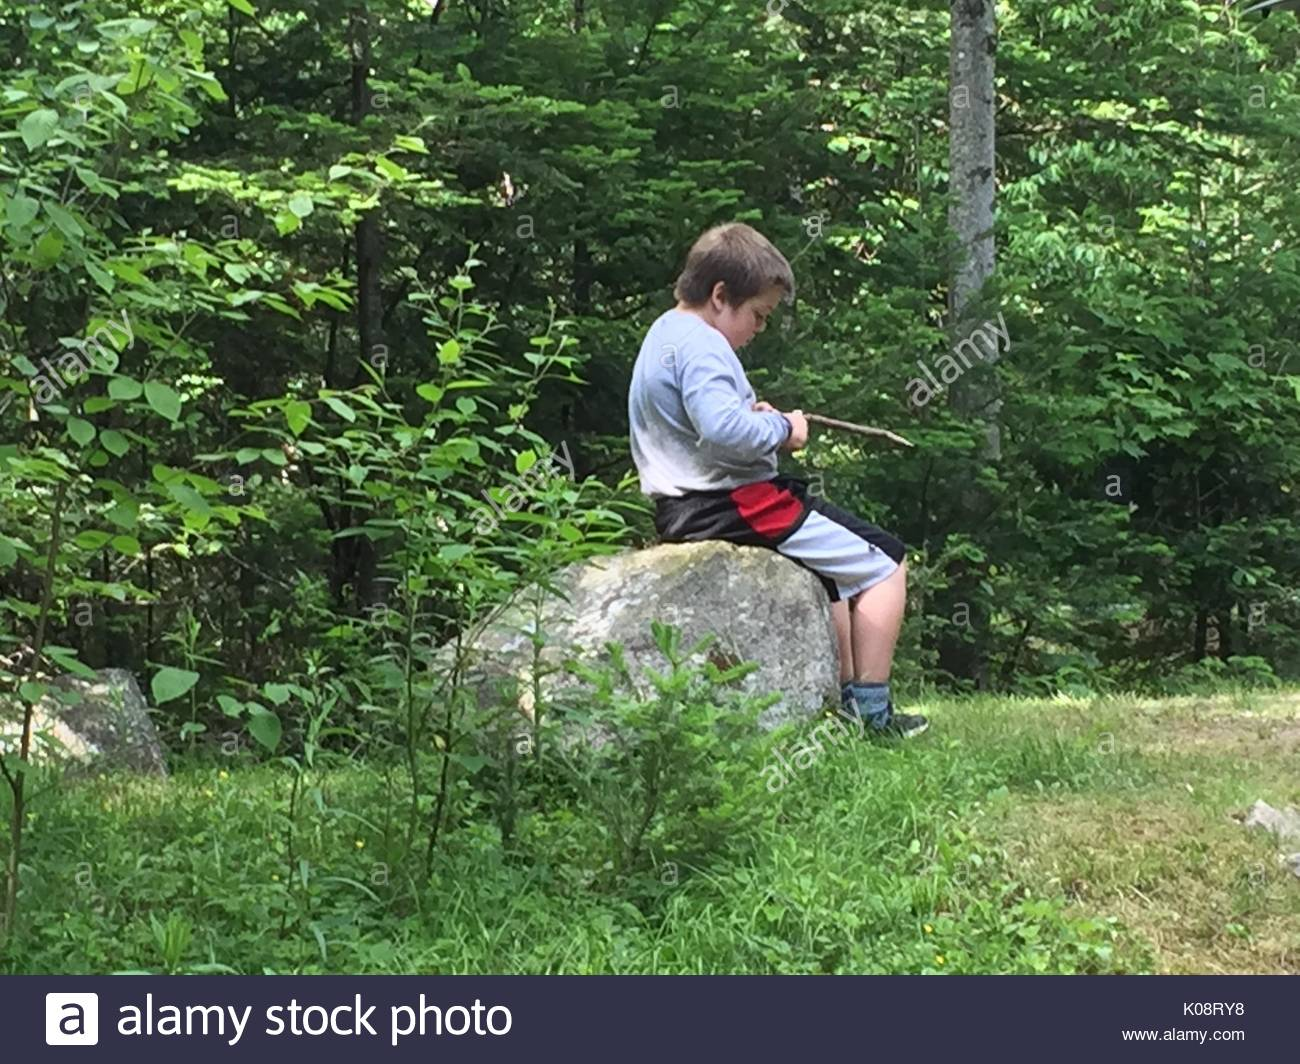 Boy Scout Whittling - Stock Image